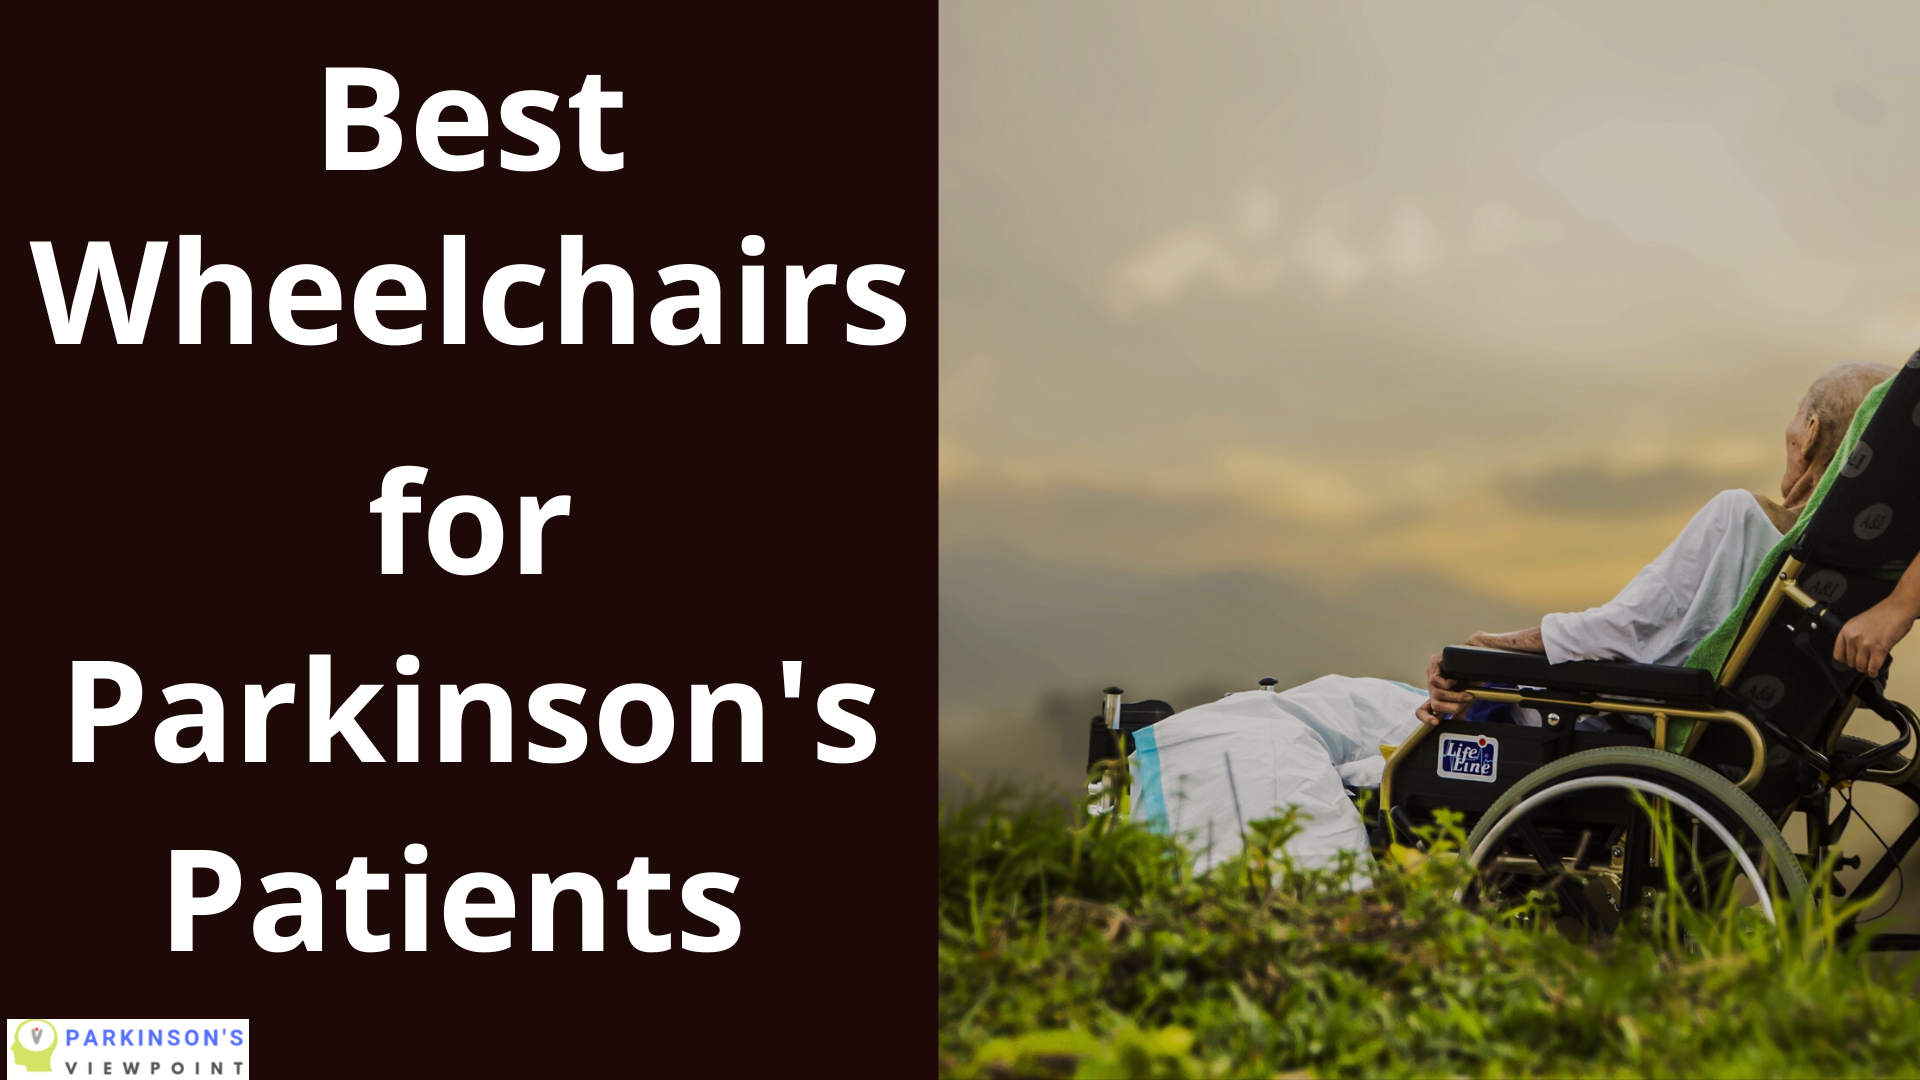 5 Best Wheelchairs for Parkinson's Patientts